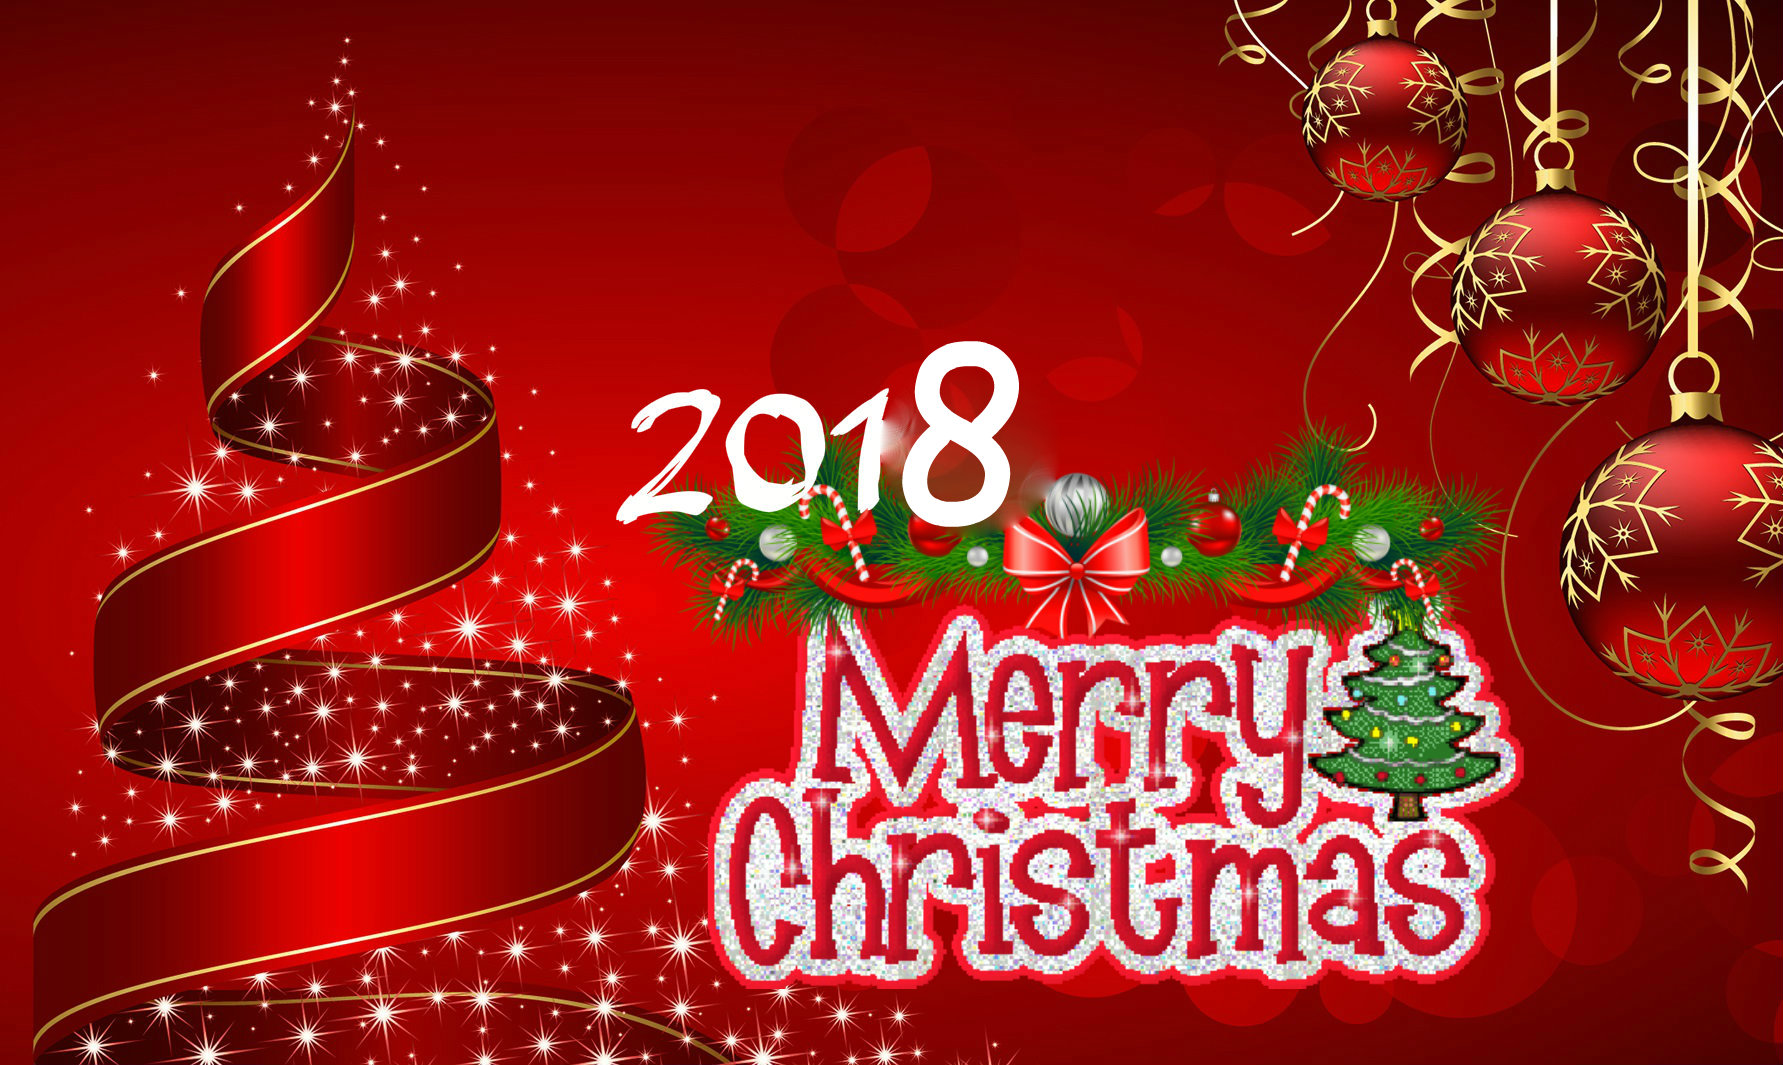 Christmas 2019 Images.Merry Christmas 2018 Wishes Quotes Images Wallpapers For